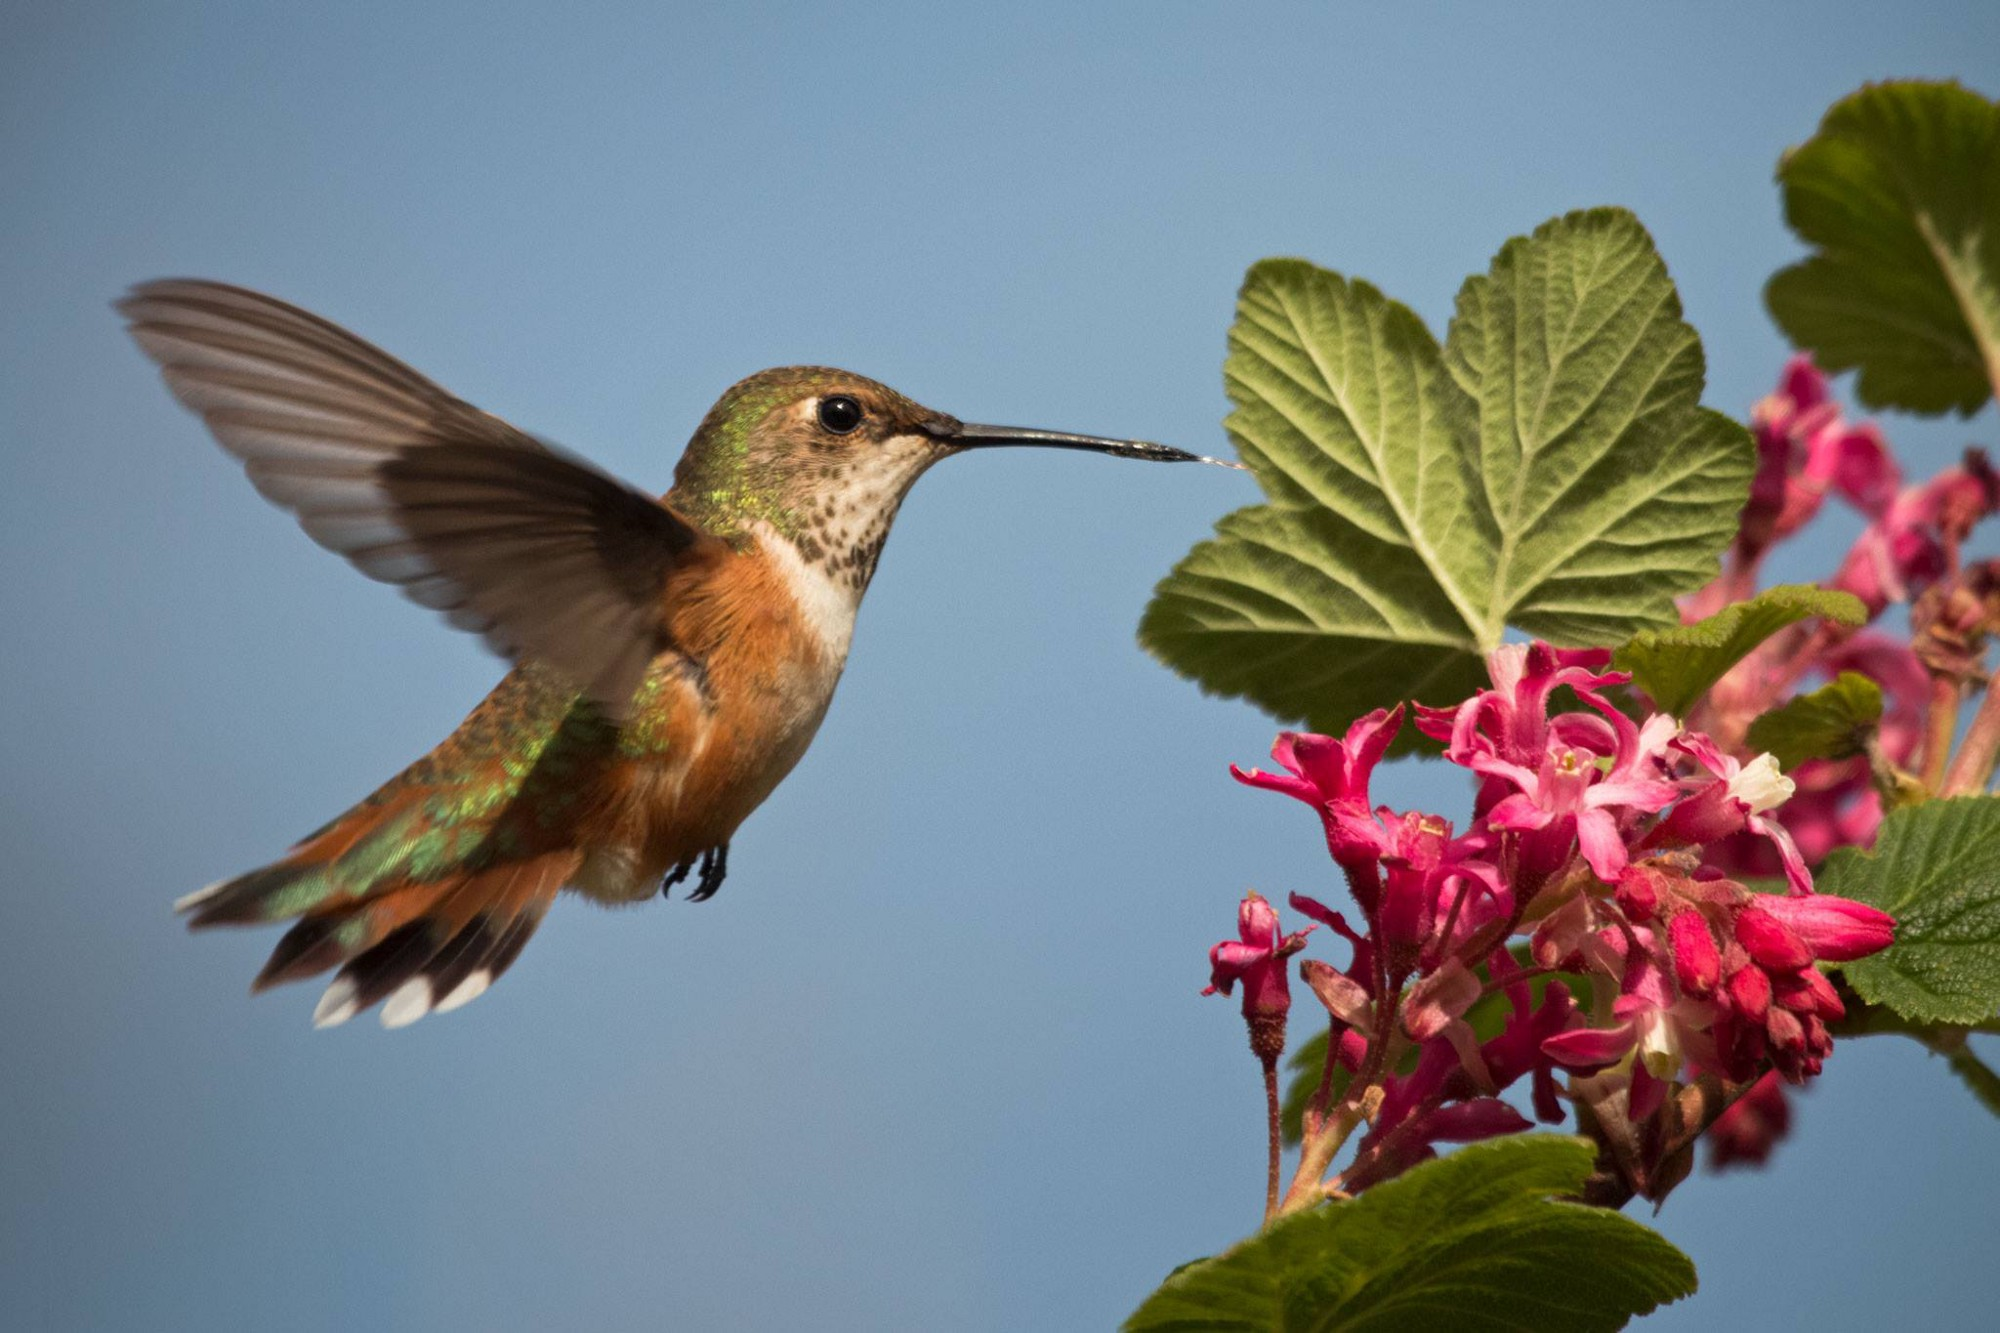 A female rufous hummingbird approaches a currant flower to feed